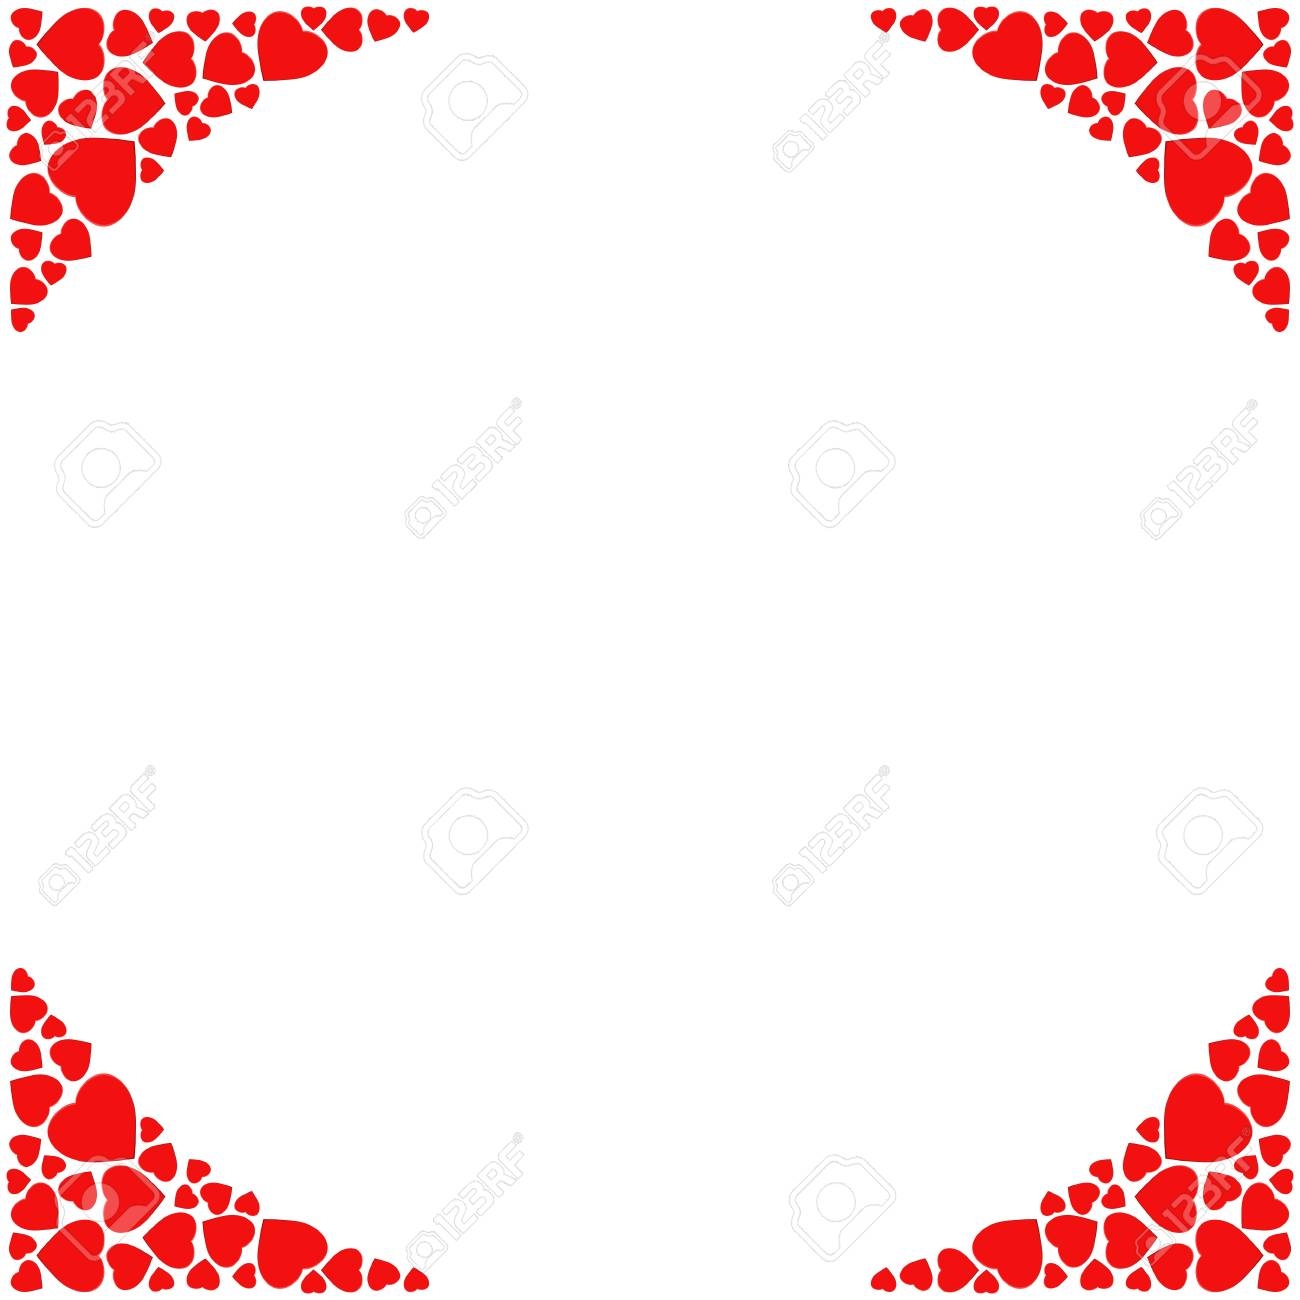 Romantic Corner Border On White Background Decorative Frame With Small Red Hearts Template For